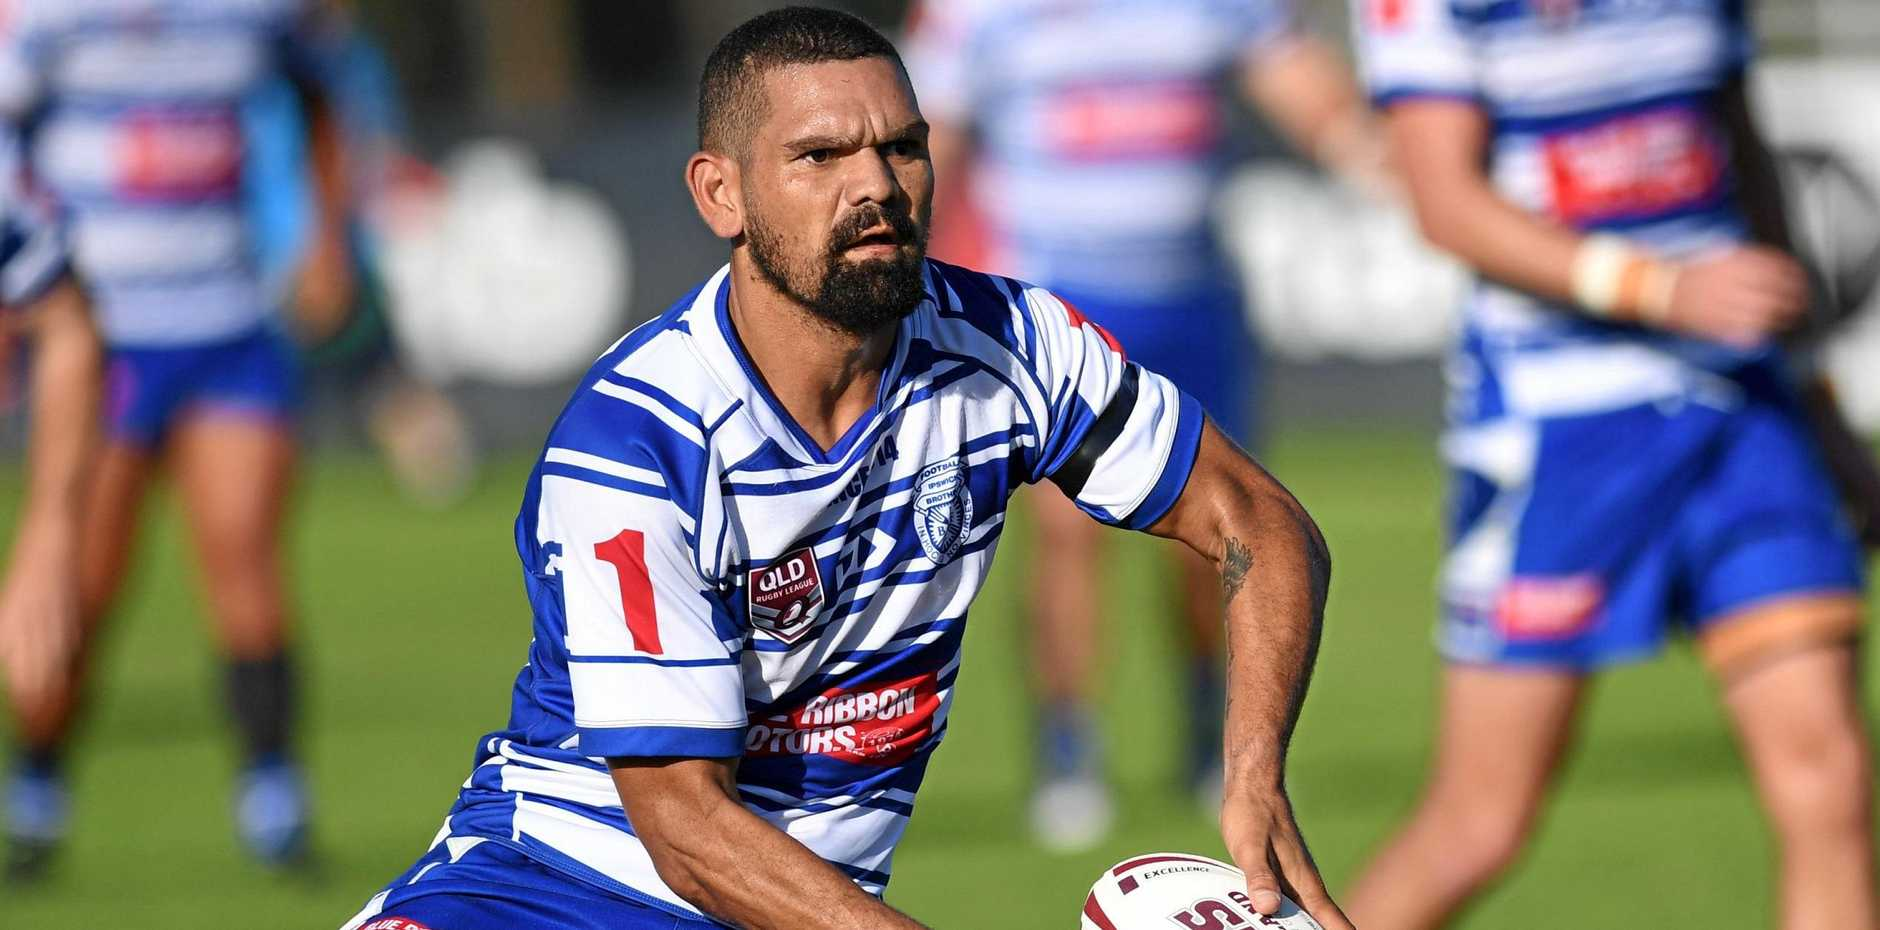 Brothers captain Wes Conlon continues to lead the Rugby League Ipswich Player of the Year standings.